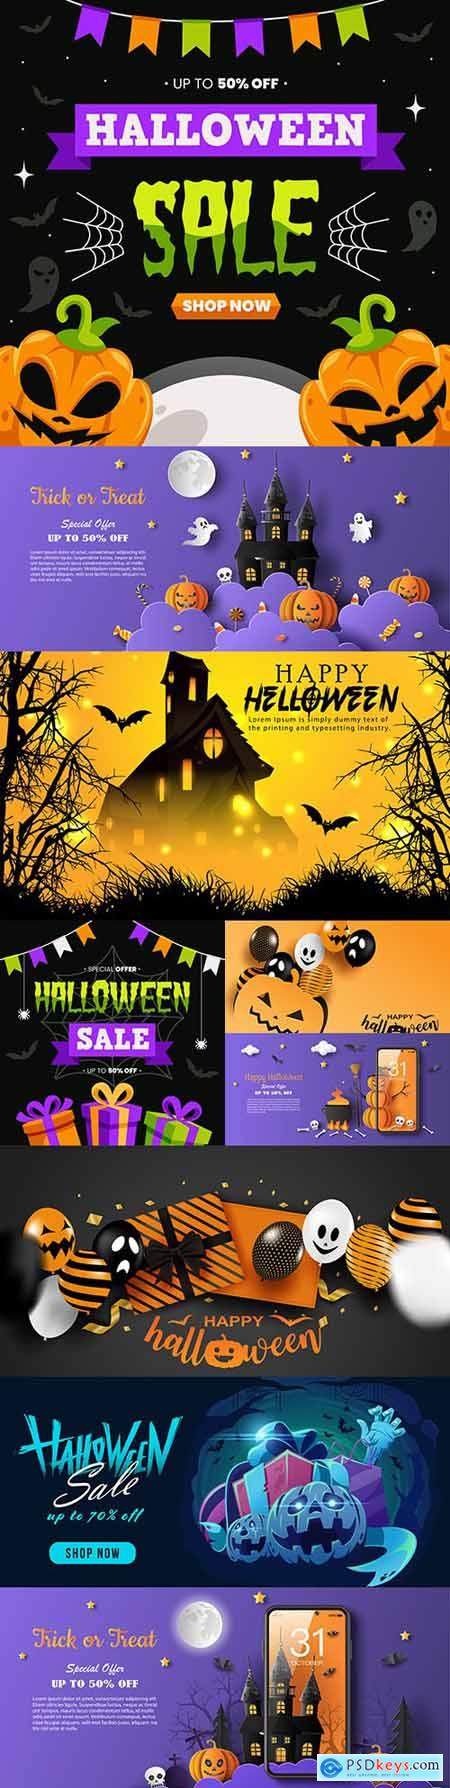 Happy Halloween holiday illustration collection design 10